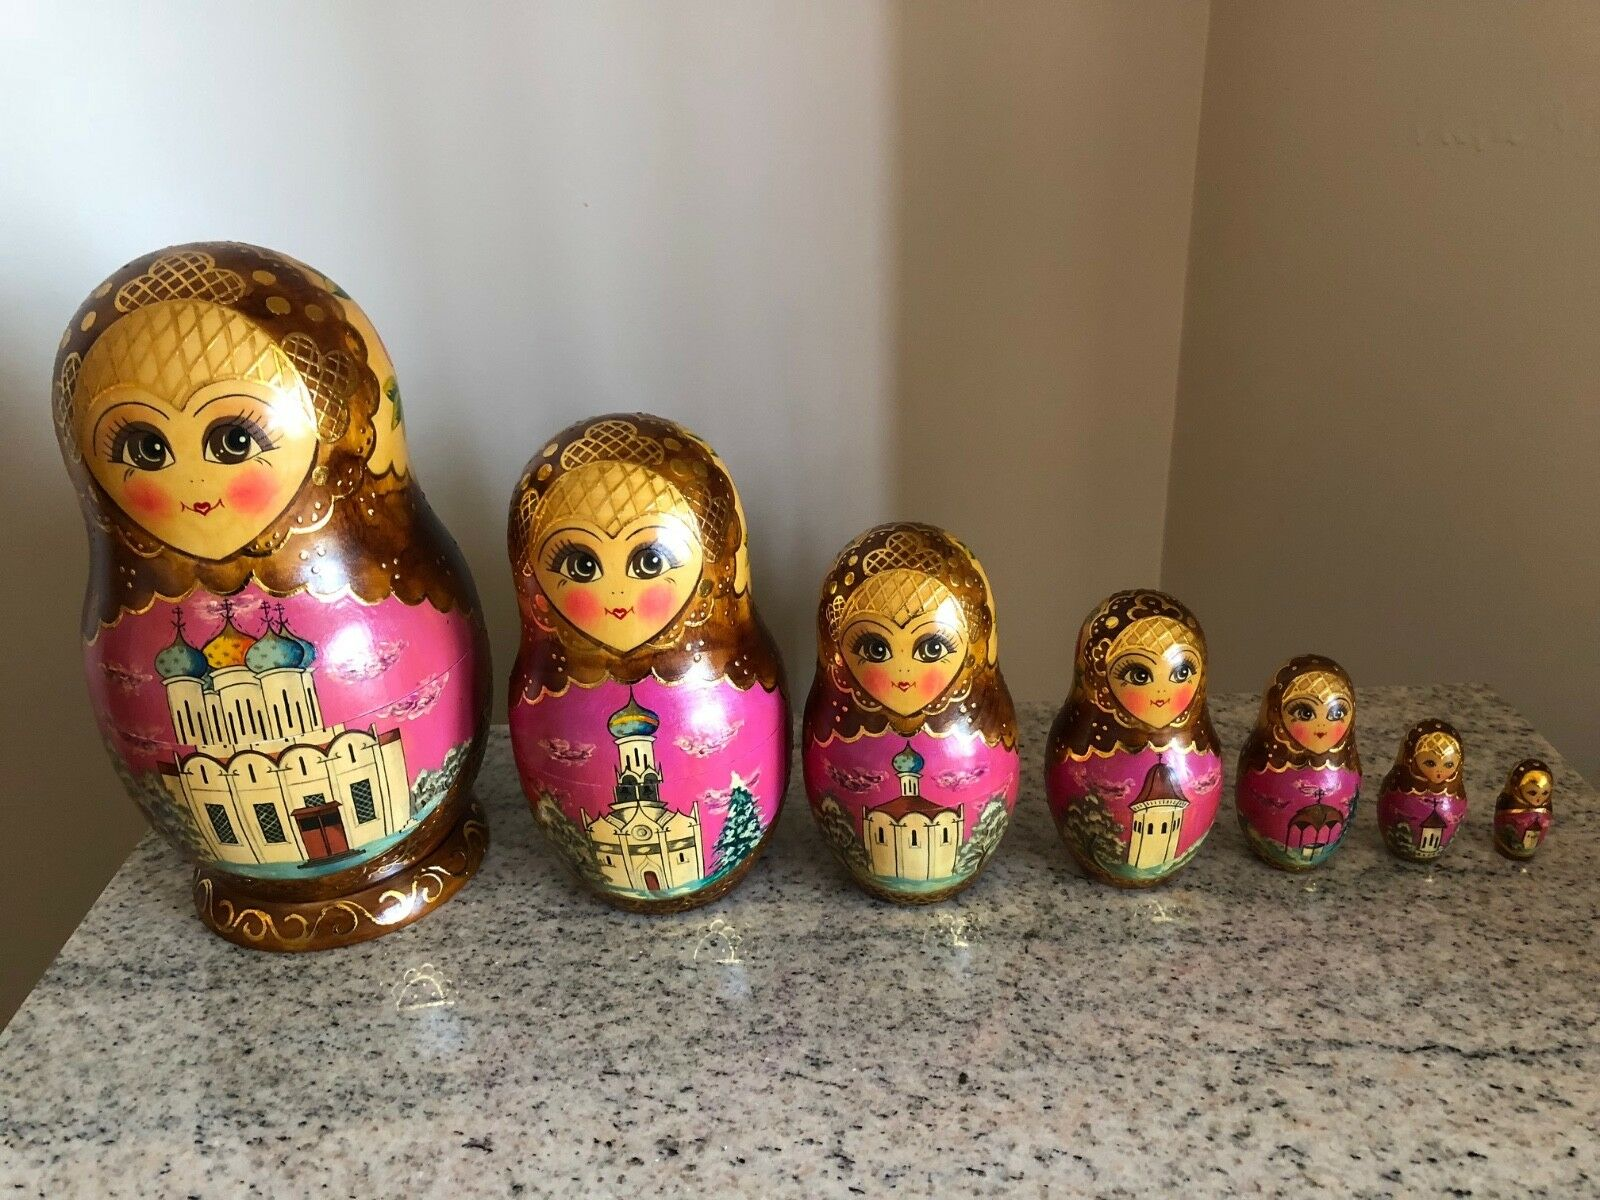 Vintage 1992 Hand Painted Russian Nesting Dolls Zagorsk Signed - 7 pcs  Churches